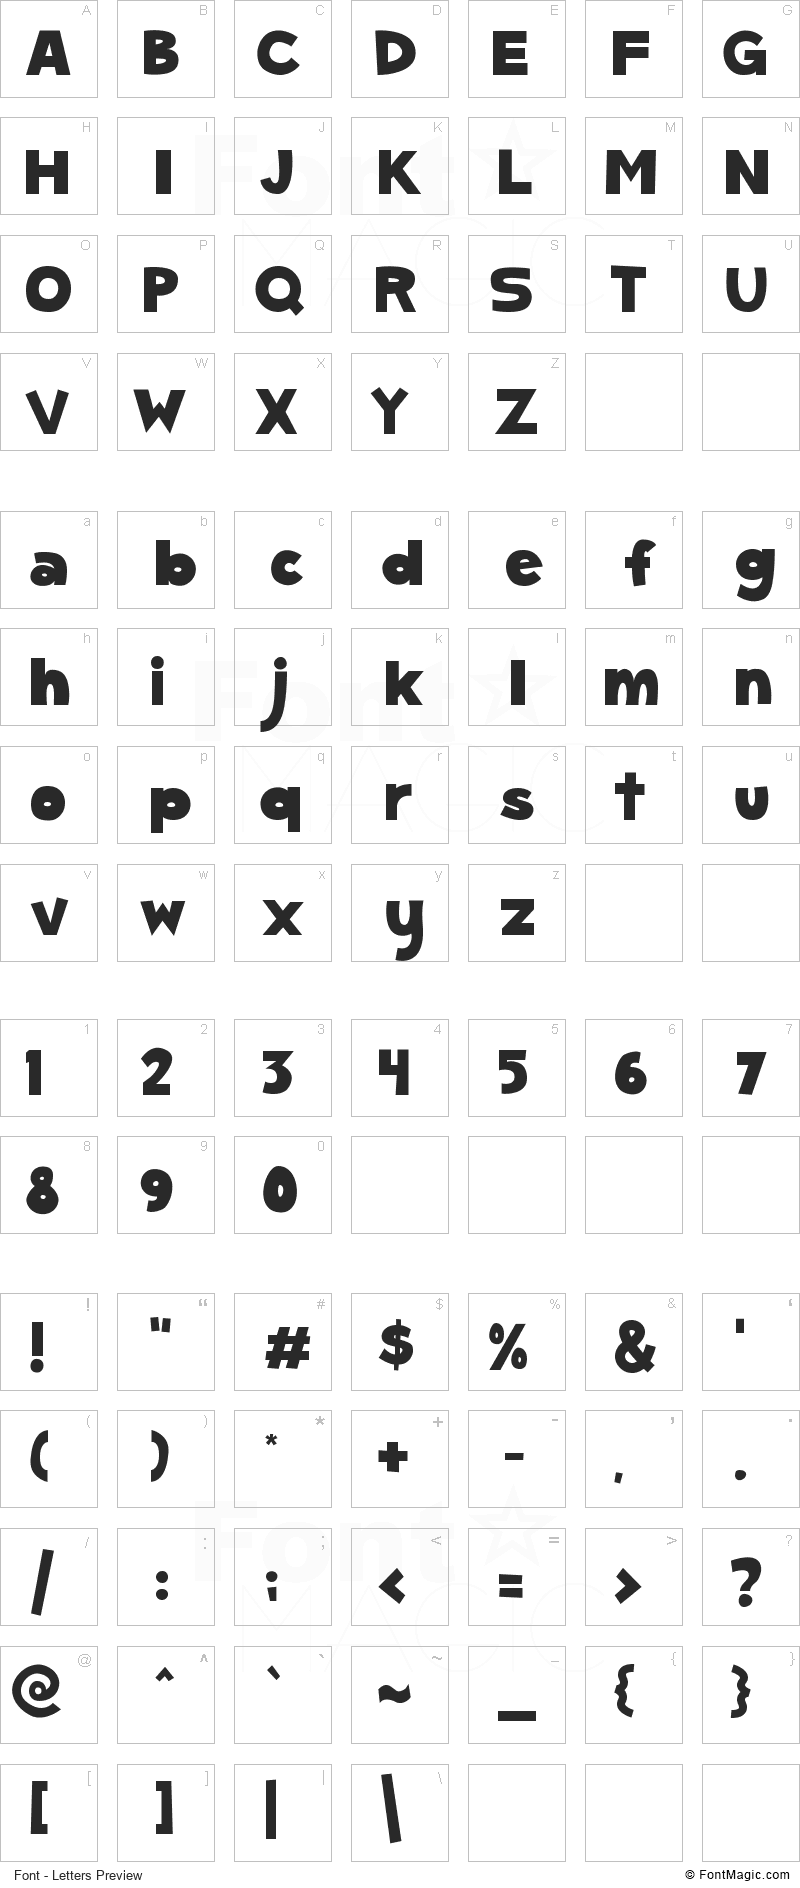 SC Gum Kids Font - All Latters Preview Chart